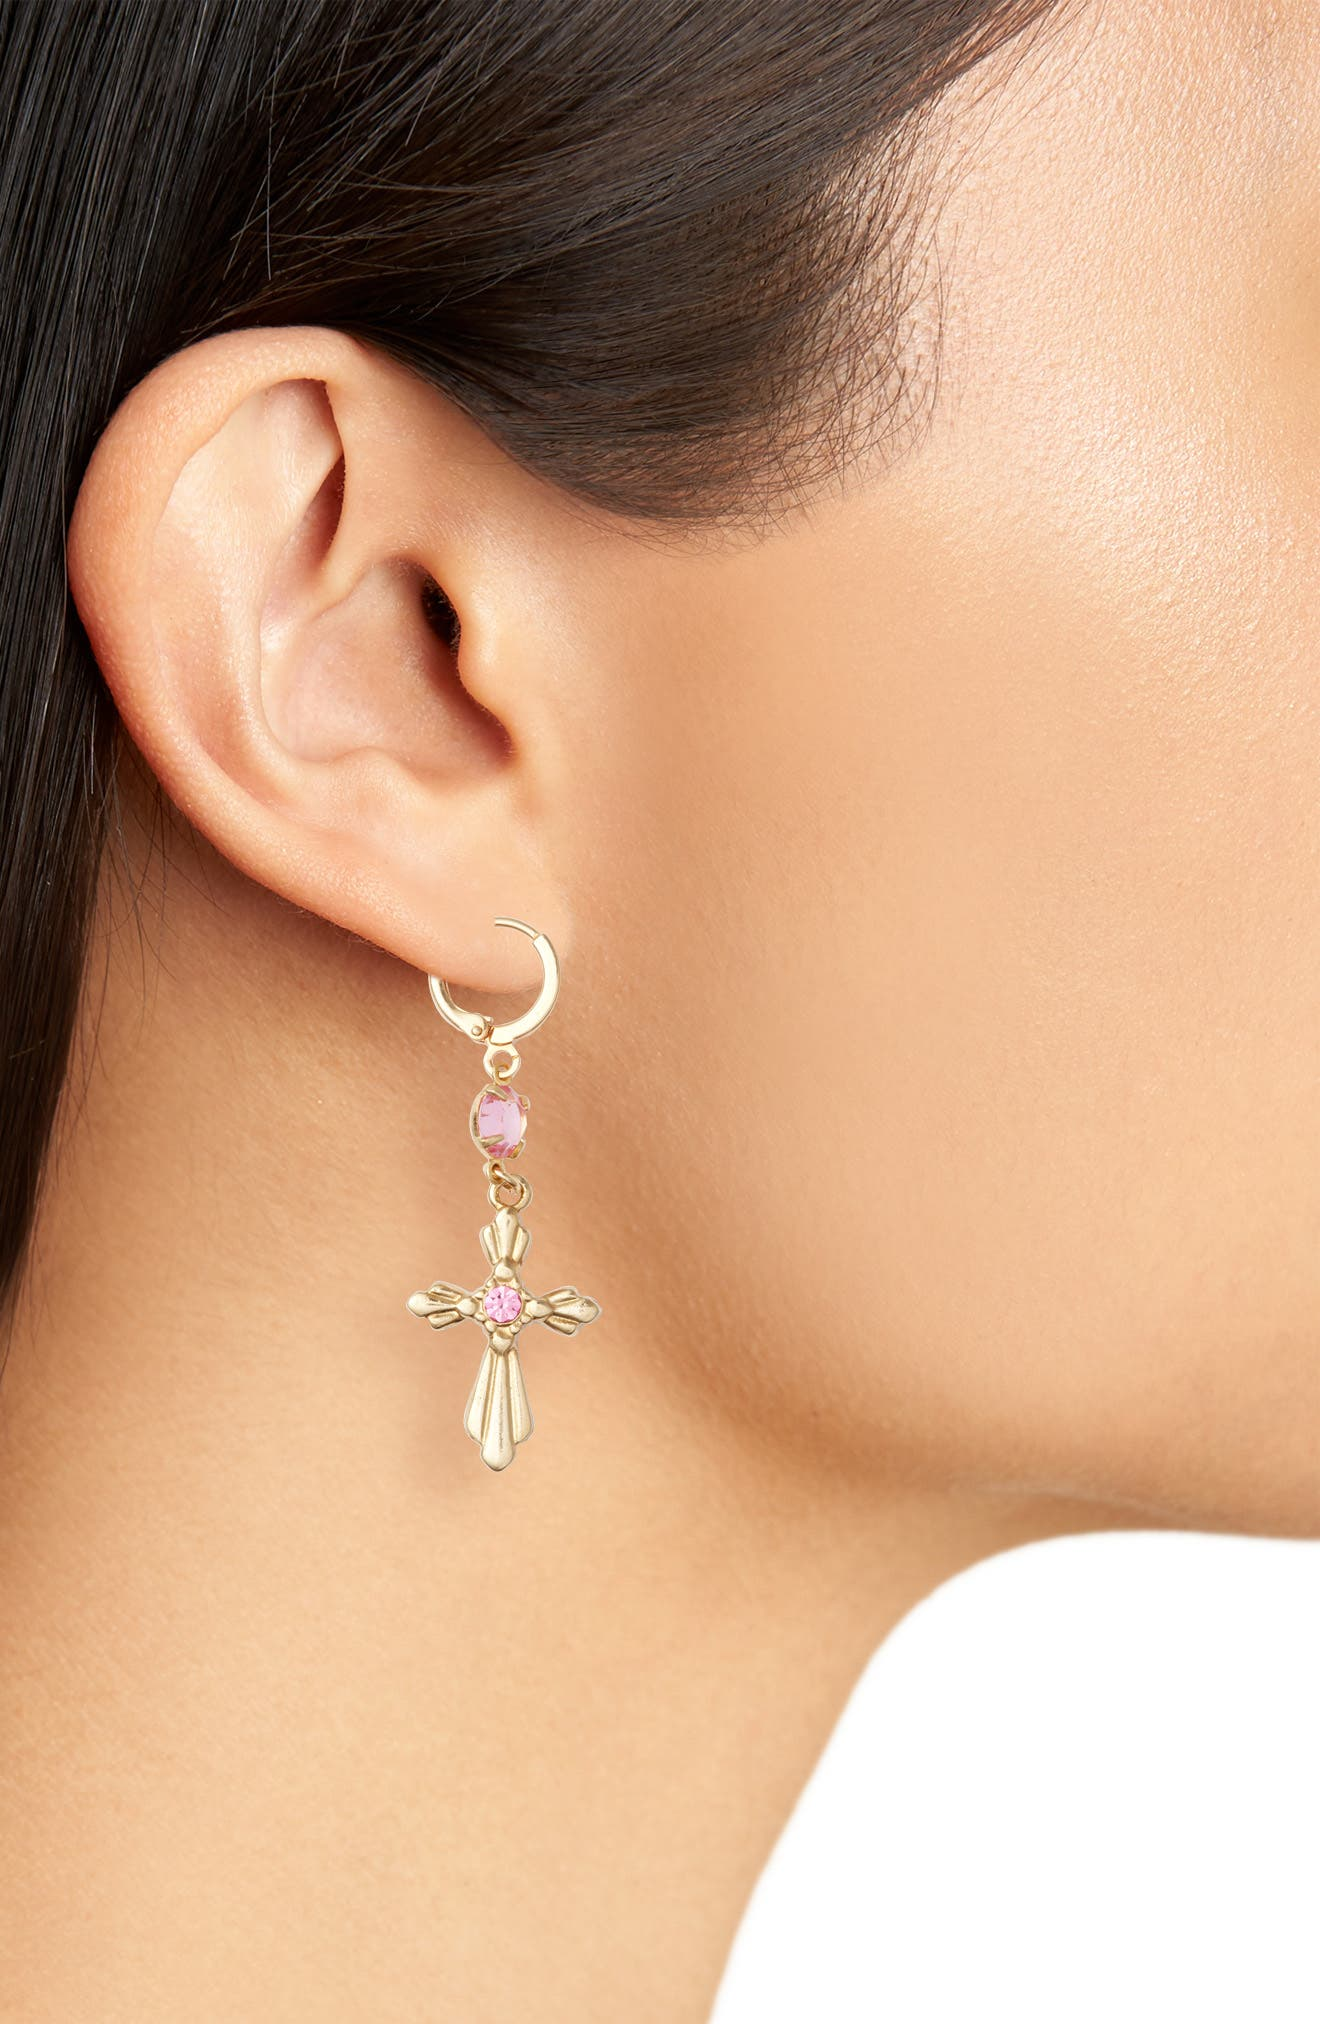 Princess Drop Earrings,                             Alternate thumbnail 2, color,                             710